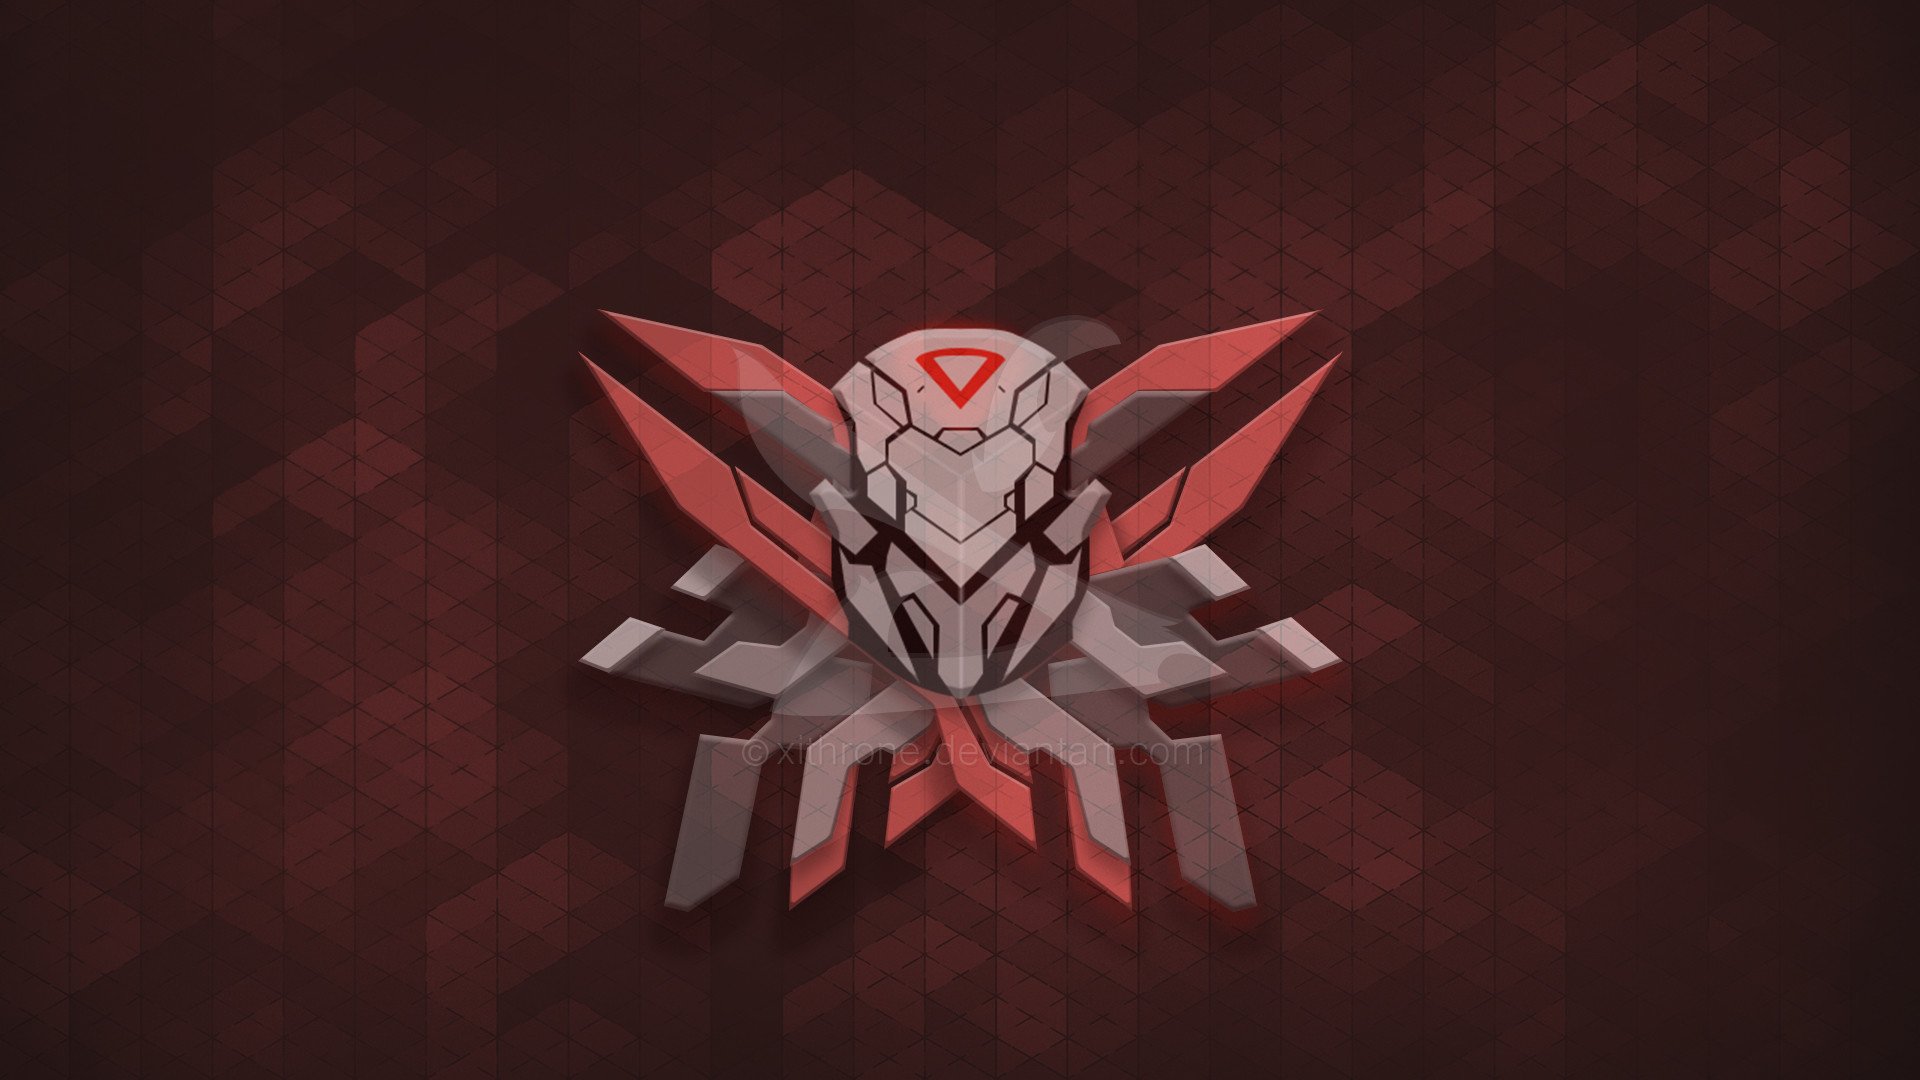 Res: 1920x1080, ... PROJECT: Zed Minimalist - League of Legends by Xithrone